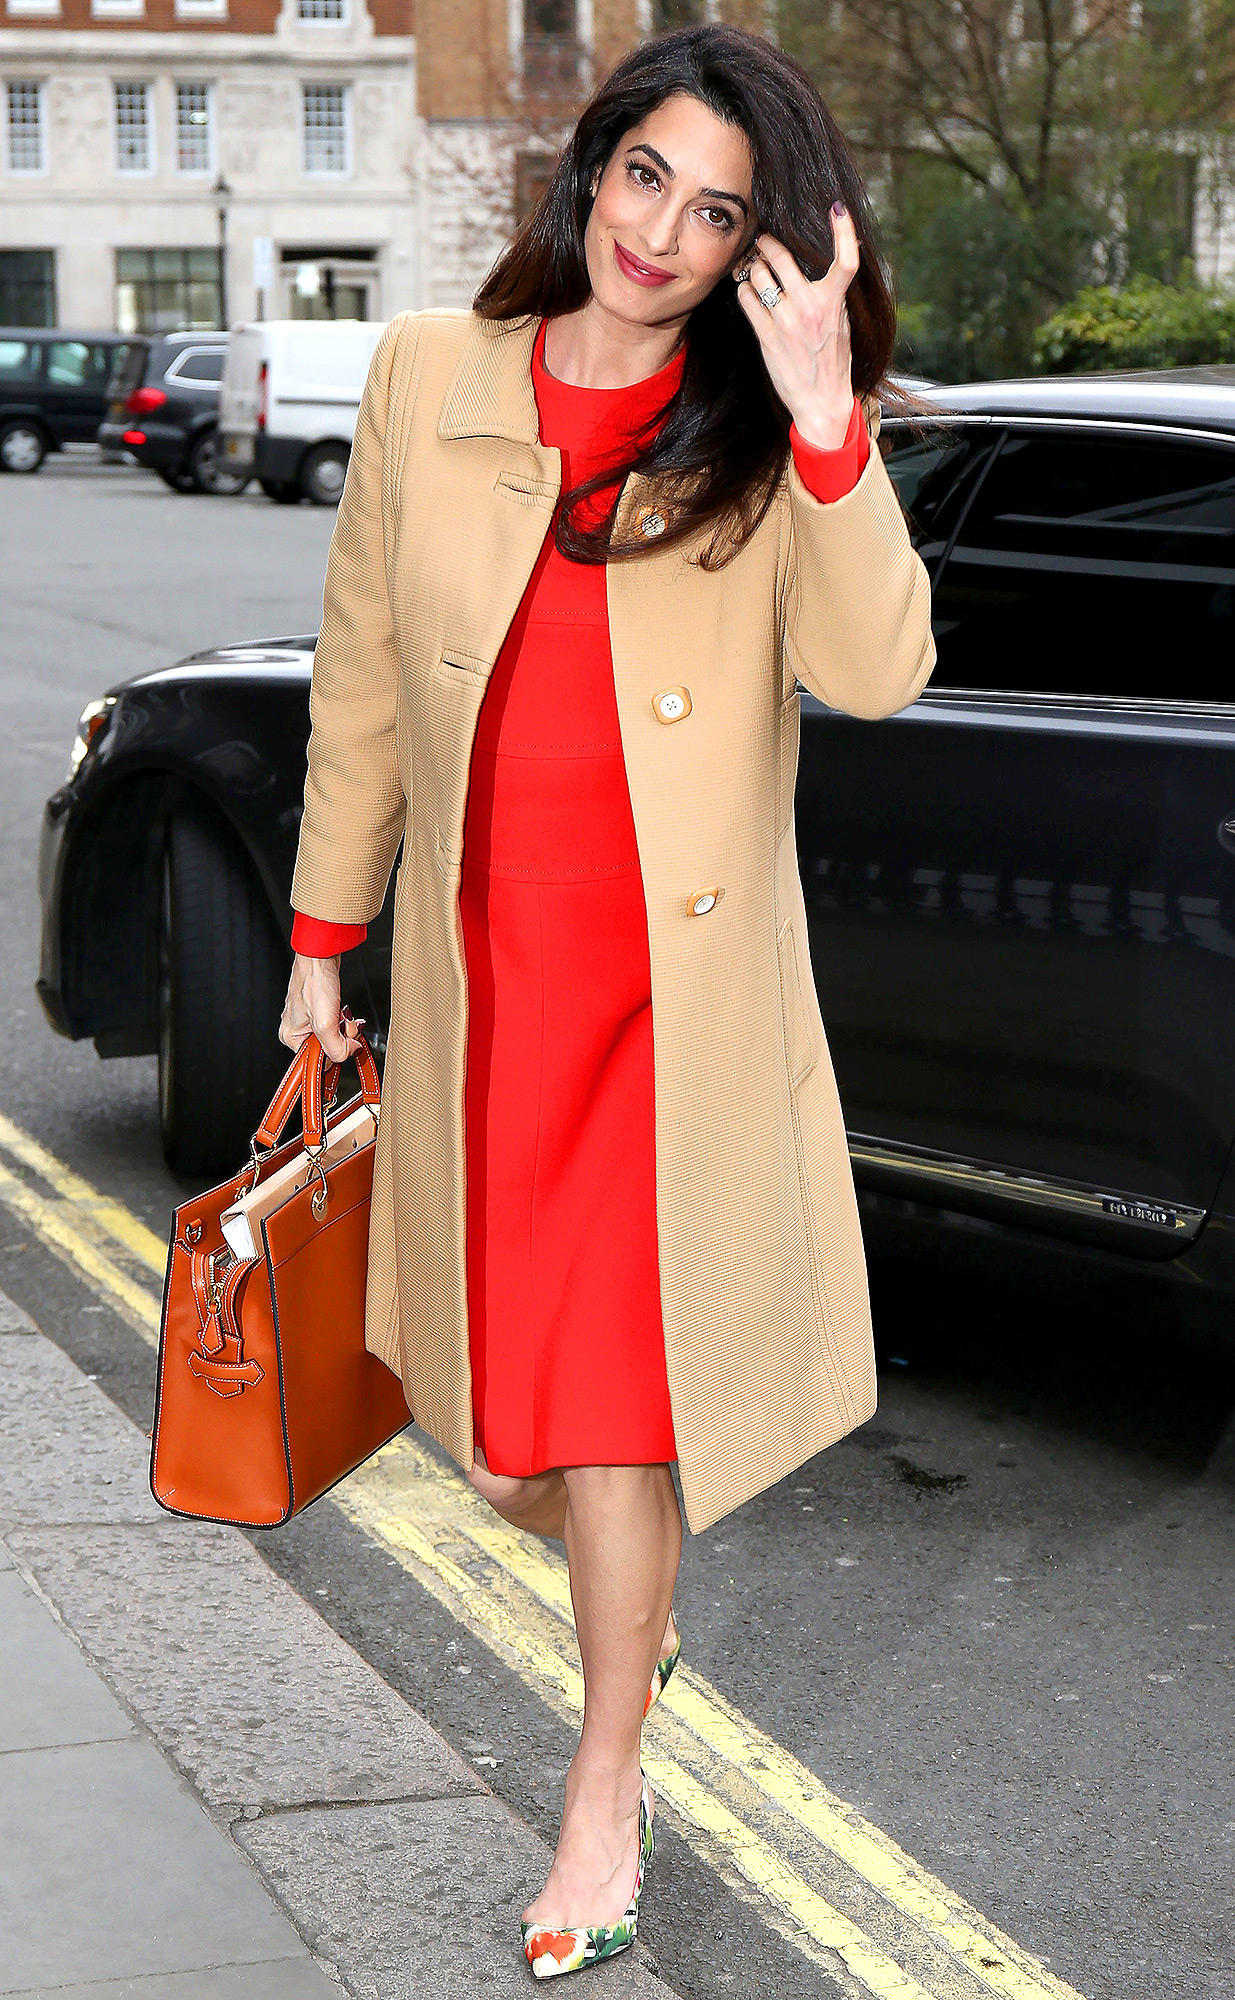 Amal Clooney Sighting In London  -  March 29, 2017